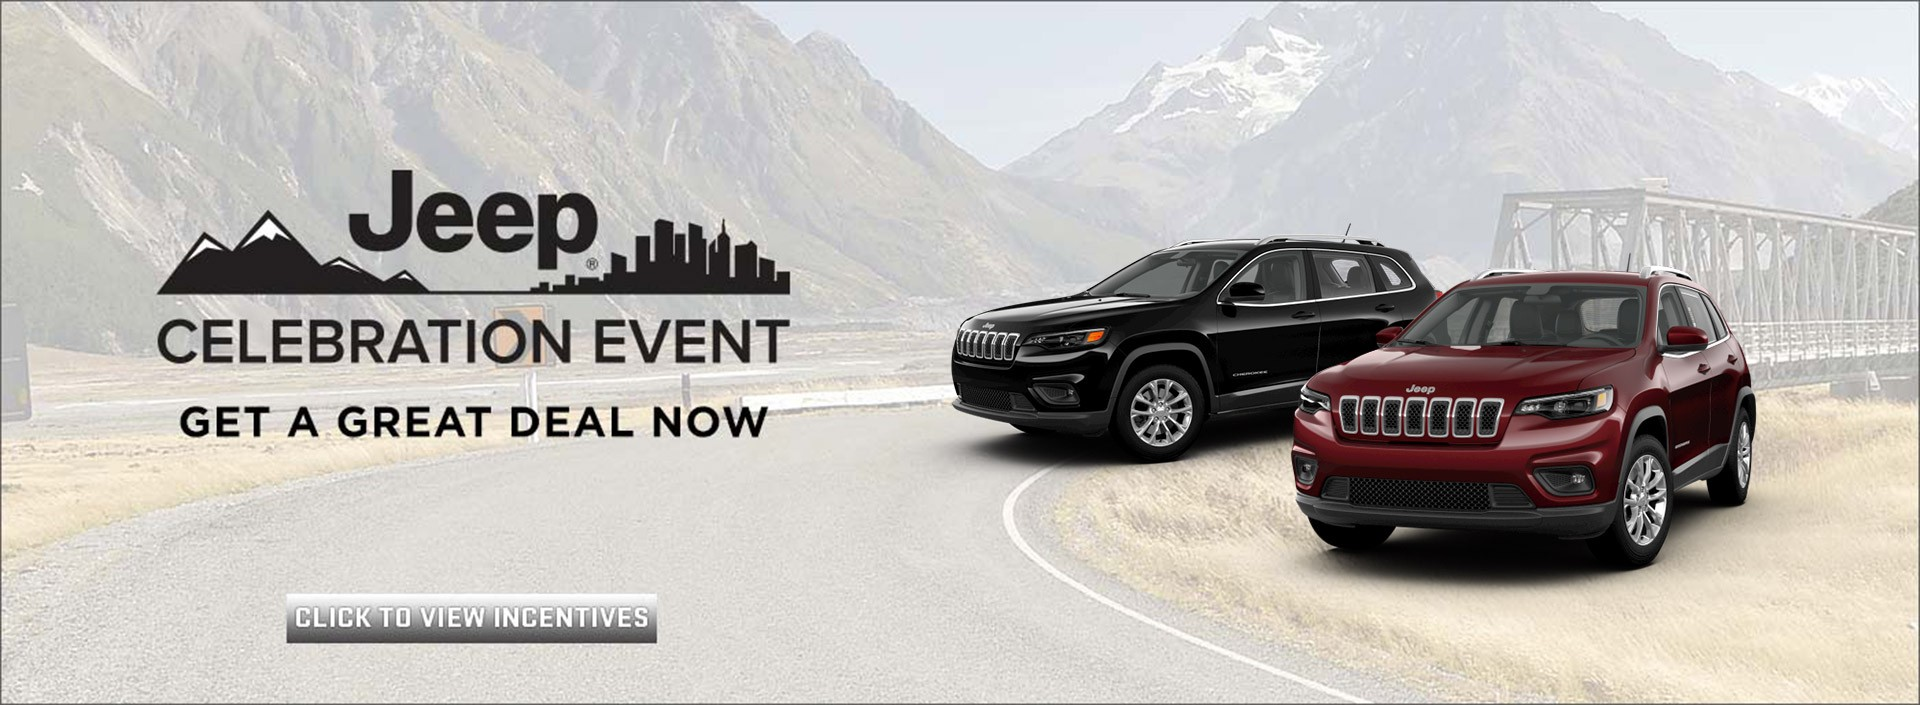 Jeep Dealers Dayton Ohio >> New Used Car Dealer Erwin Chrysler Dodge Near Piqua Oh